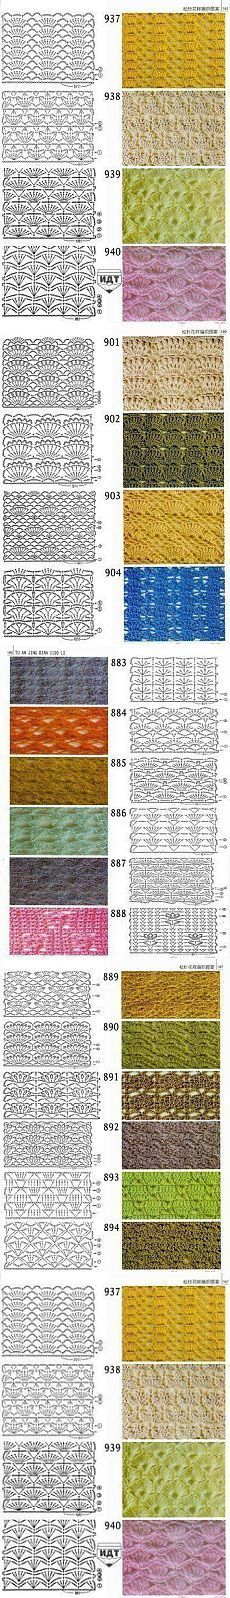 Baby Knitting Patterns Techniques Patterns in the piggy bank (crochet) - Country Mom Crochet Pouf Pattern, Crochet Motif Patterns, Crochet Symbols, Crochet Flower Tutorial, Baby Afghan Crochet, Granny Square Crochet Pattern, Crochet Diagram, Crochet Chart, Stitch Patterns